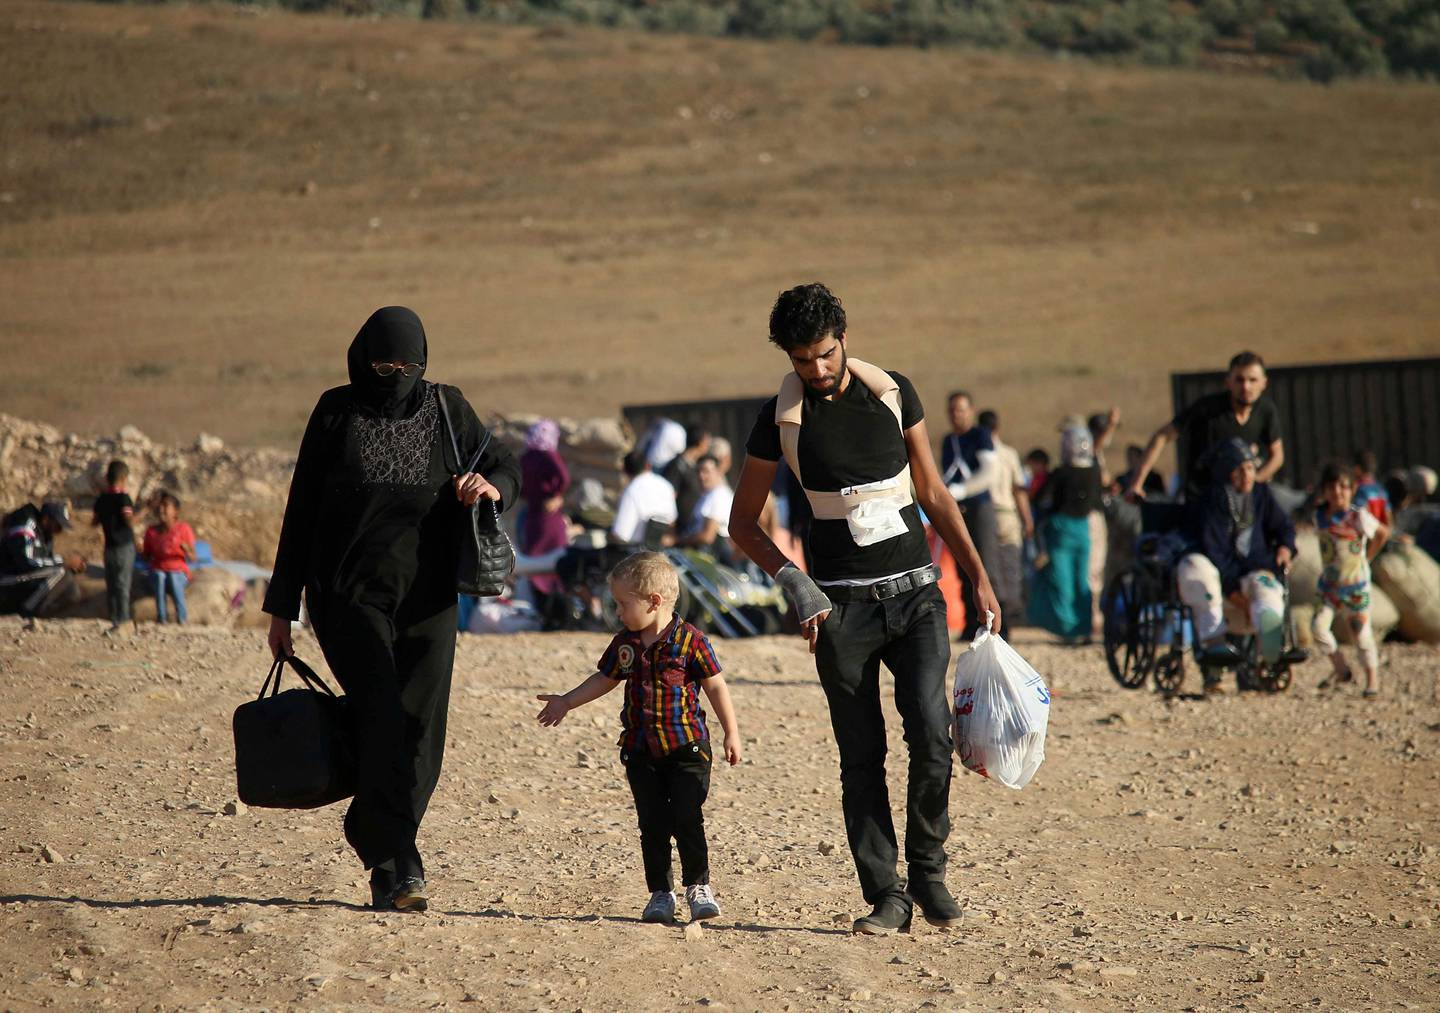 Syrians walk carrying their belongings on August 22, 2017 after crossing the Syria-Jordan border near the town of Nasib as they return to their homes following a US-Russia ceasefire brokered in three southern provinces, Daraa, Quneitra, and Sweida earlier in the year.  / AFP PHOTO / Mohamad ABAZEED